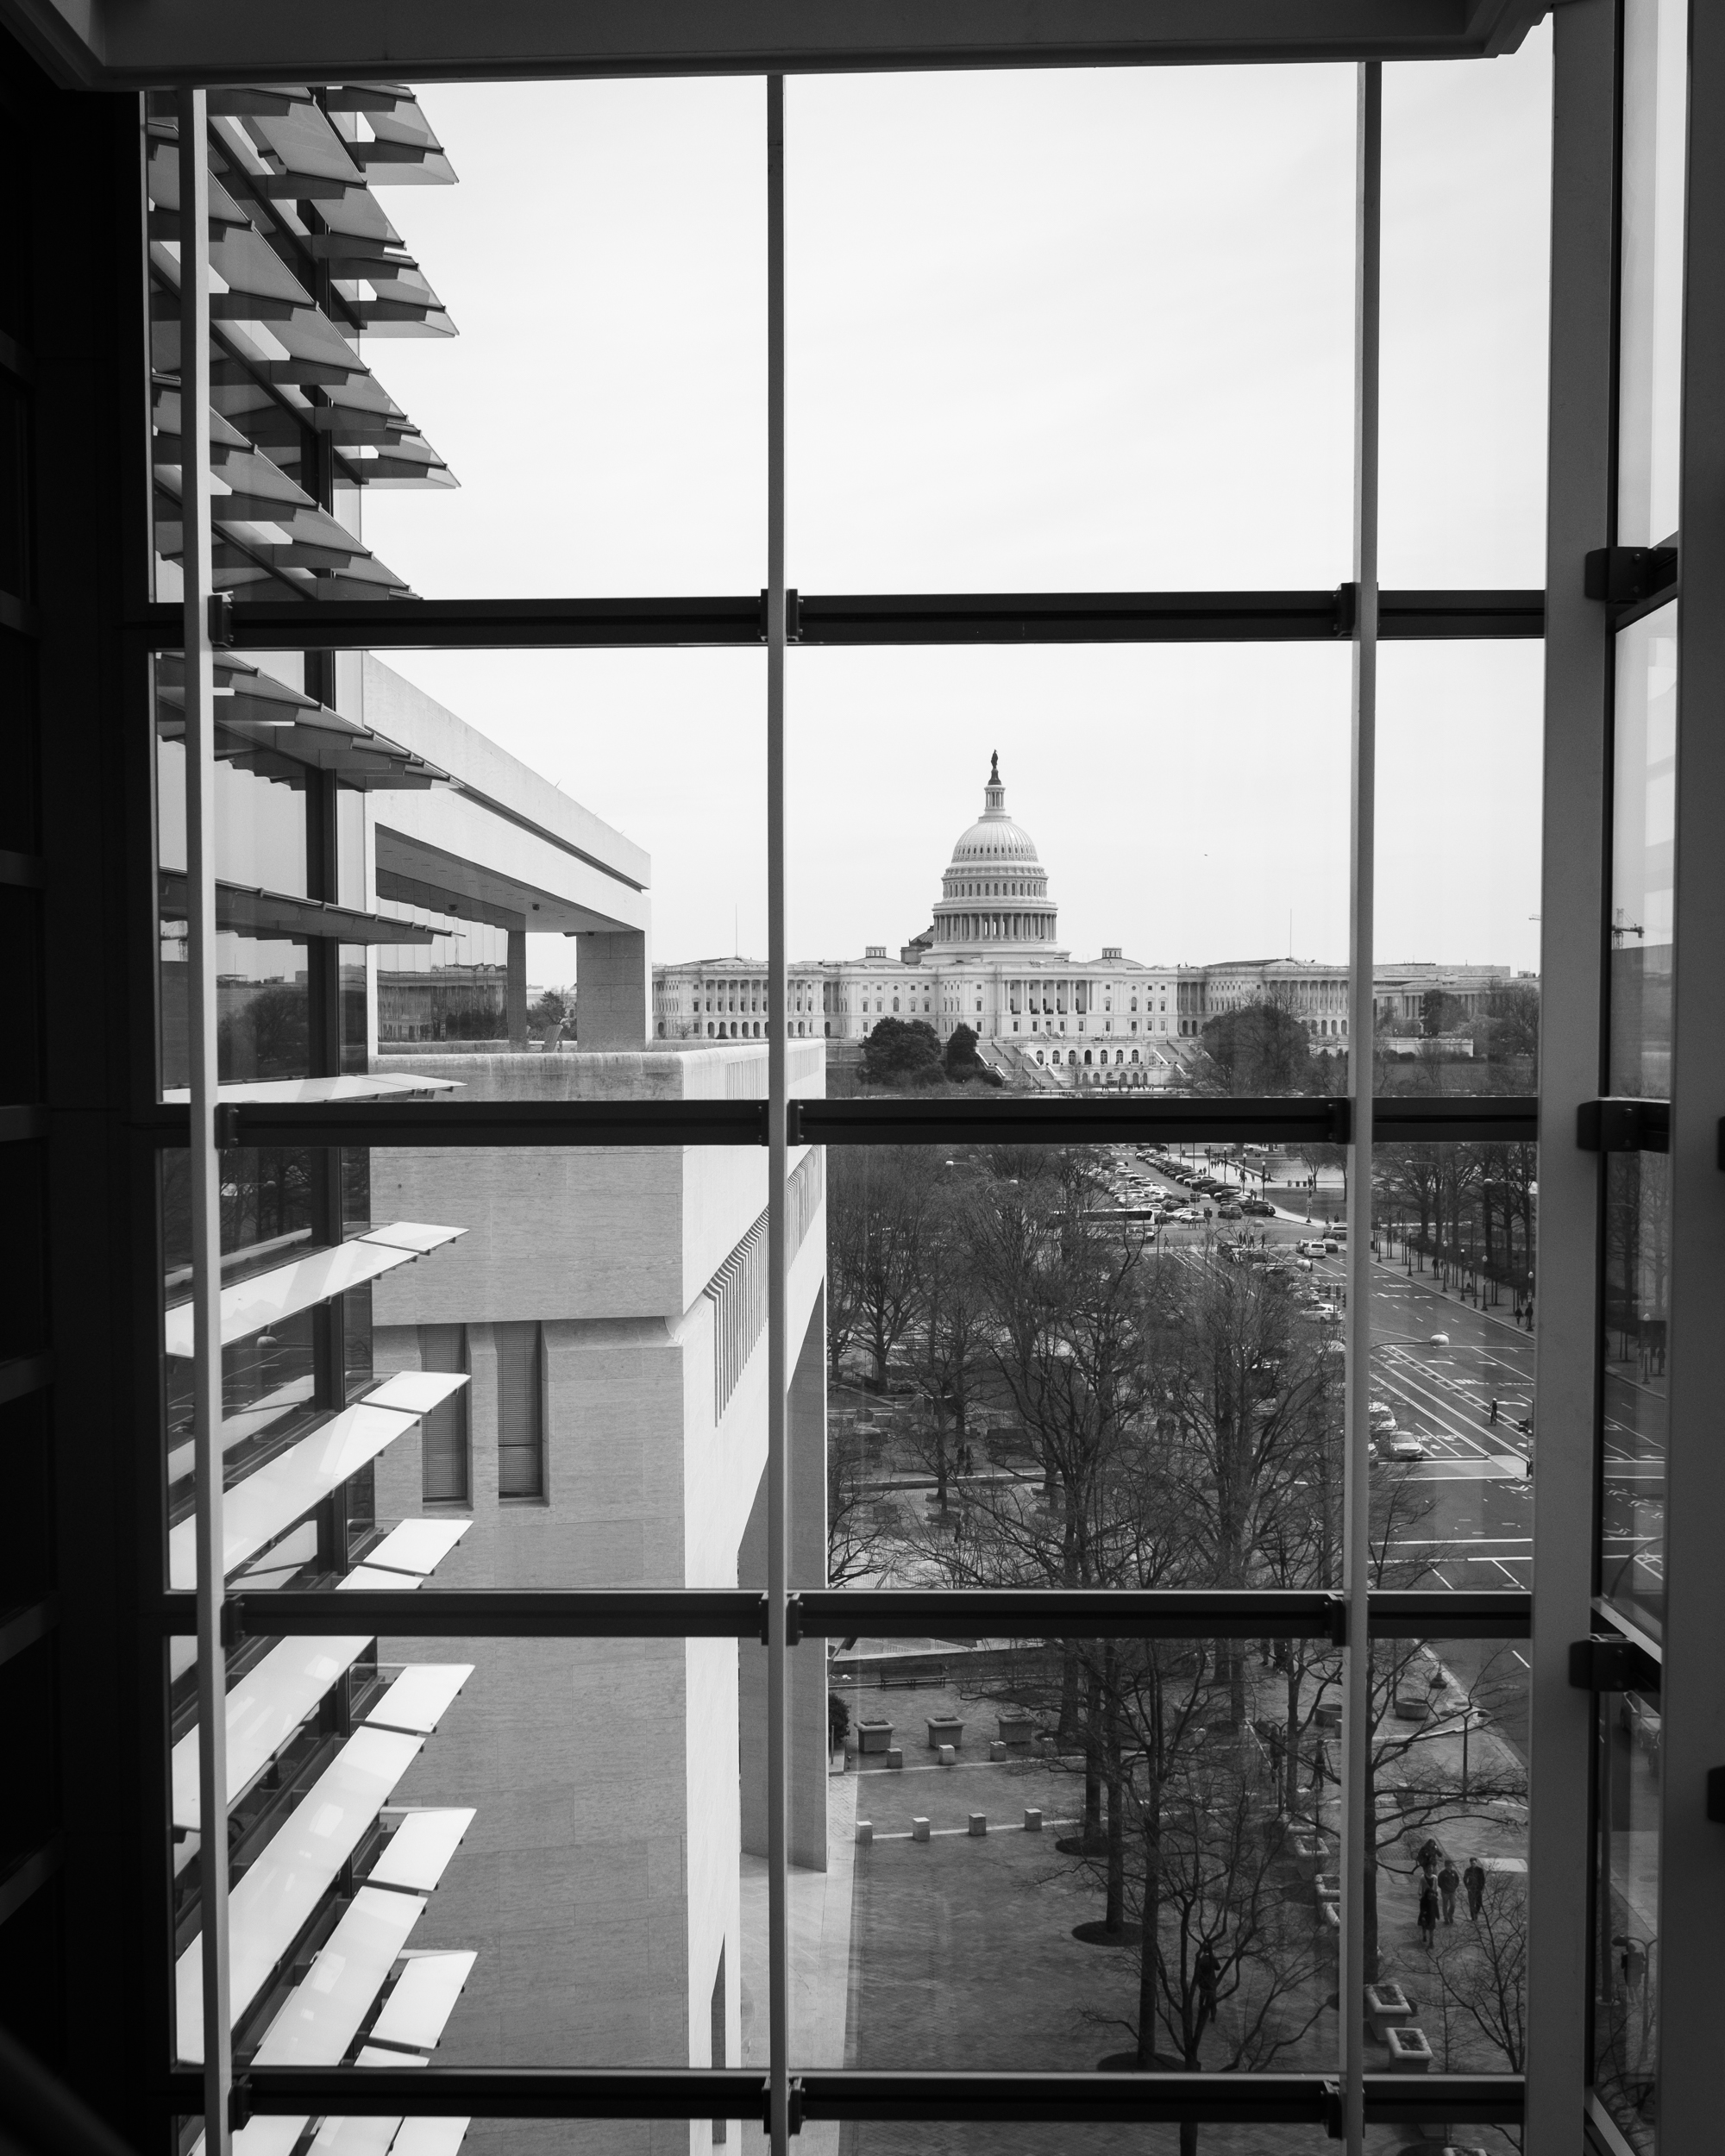 The US Capitol building from inside the Newseum.